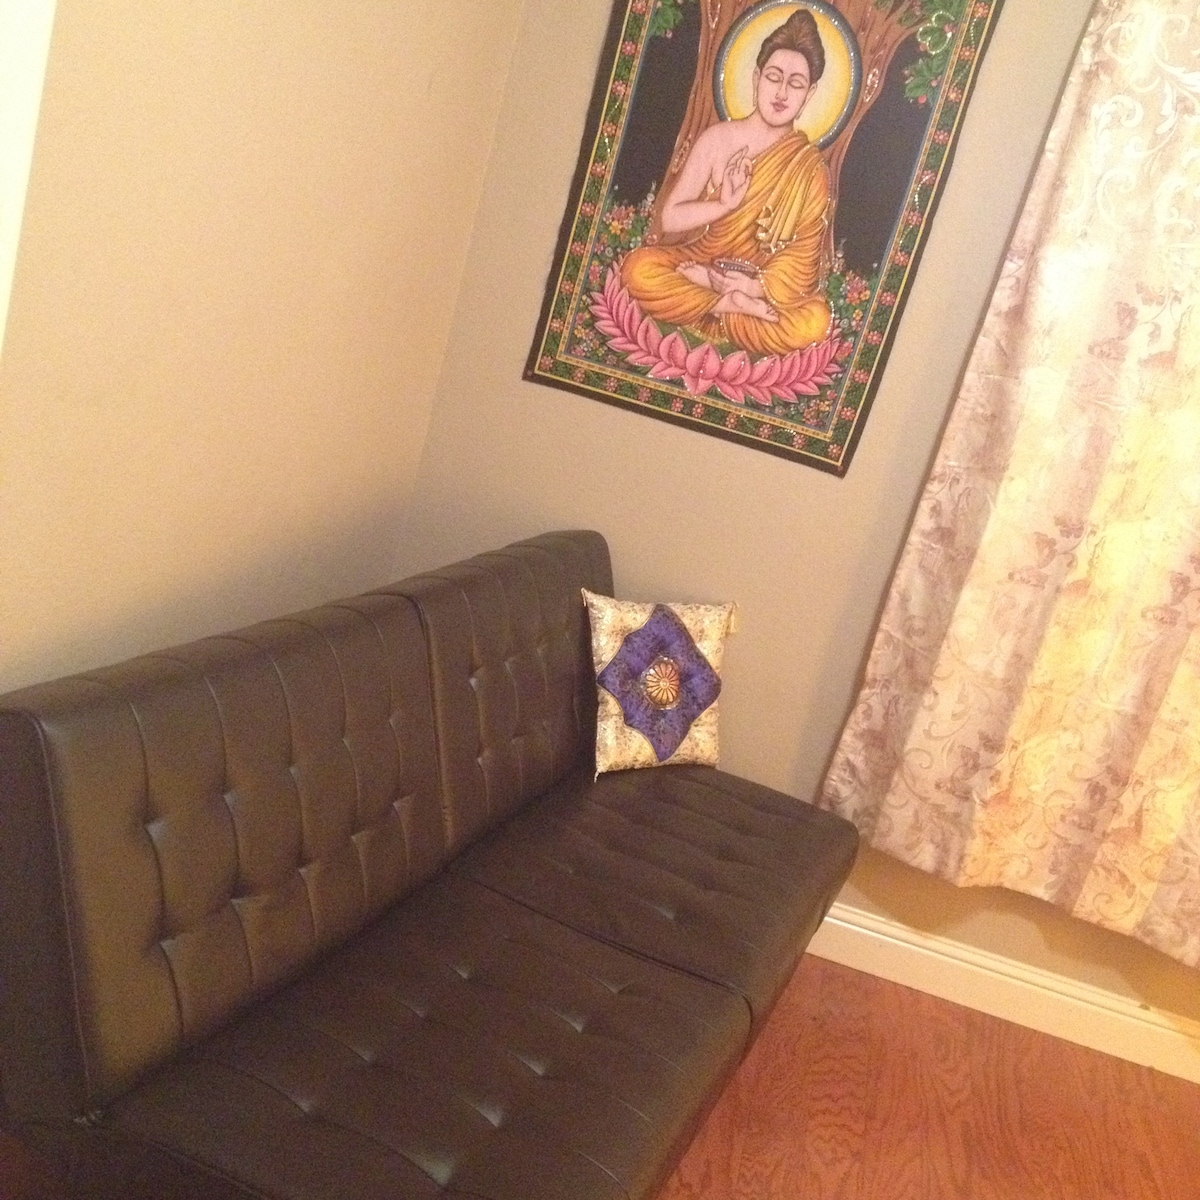 DOWNTOWN: peaceful meditation room